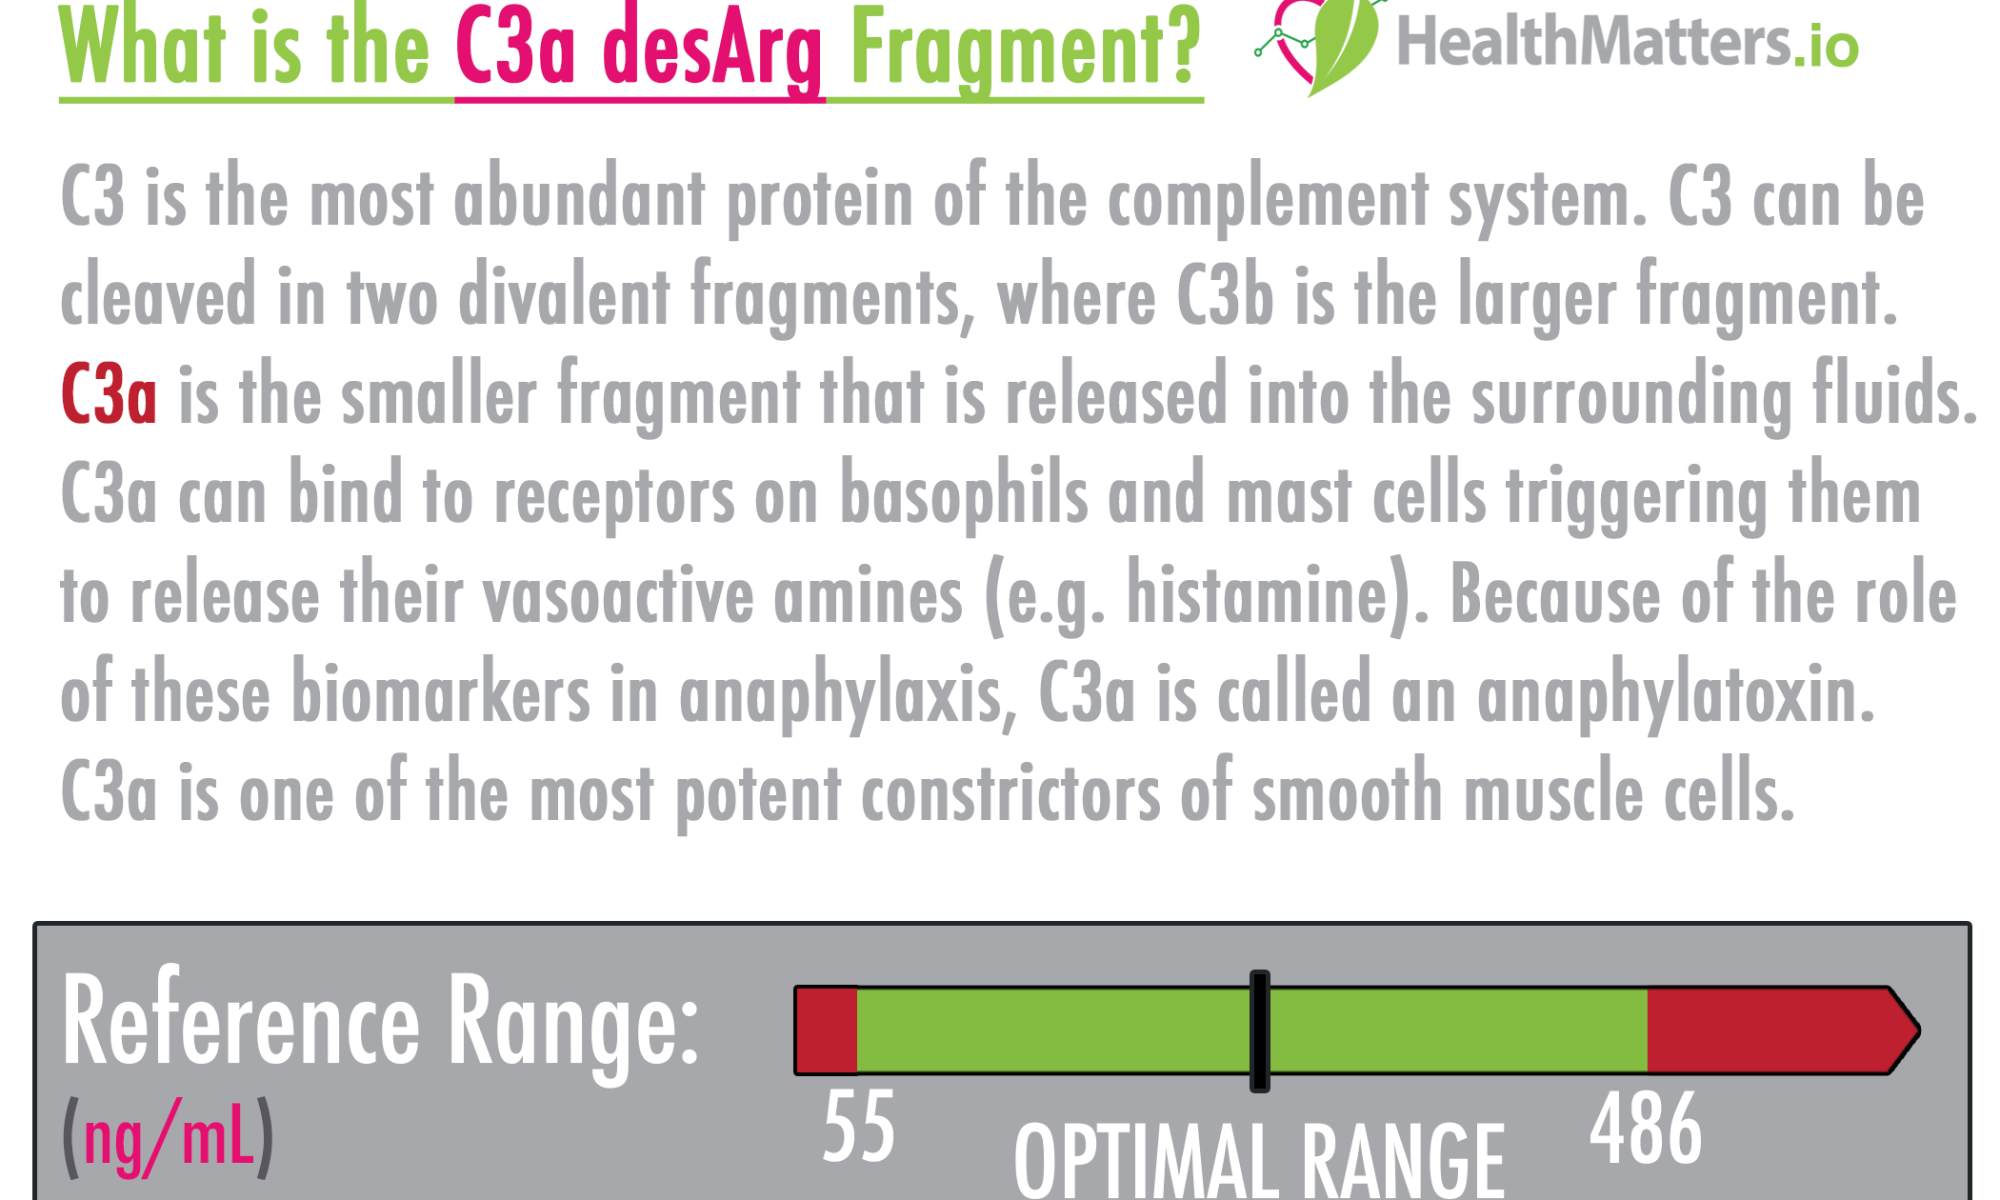 C3a desArg Fragment high low meaning treatment mold lyme lupus test results interpretation